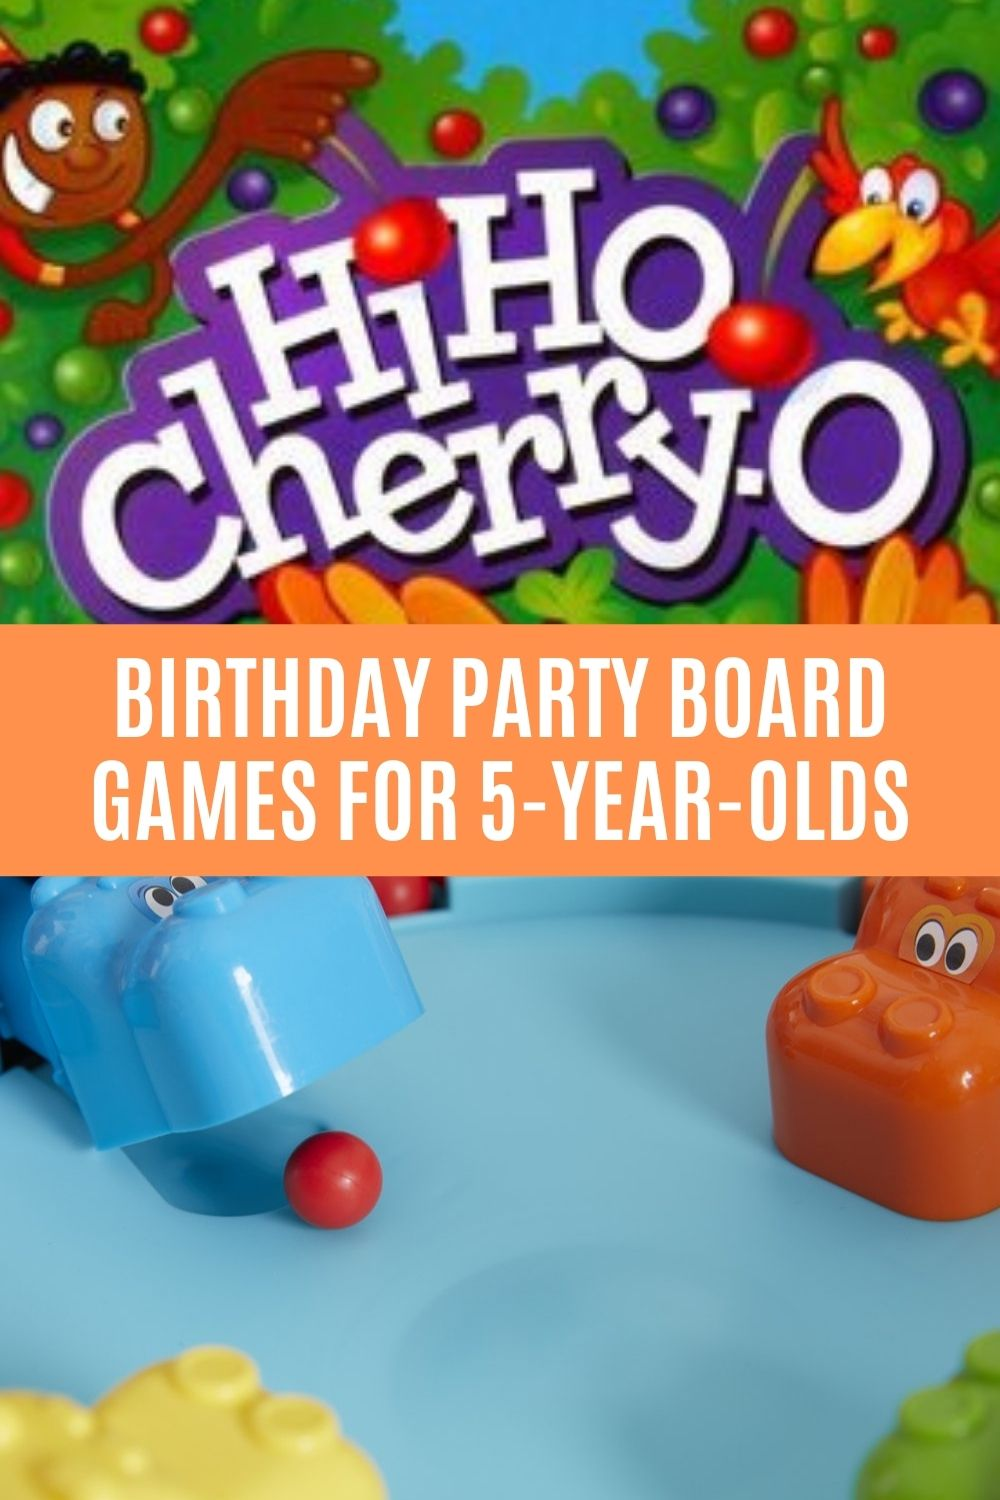 Board Game Ideas For 5 Year Olds